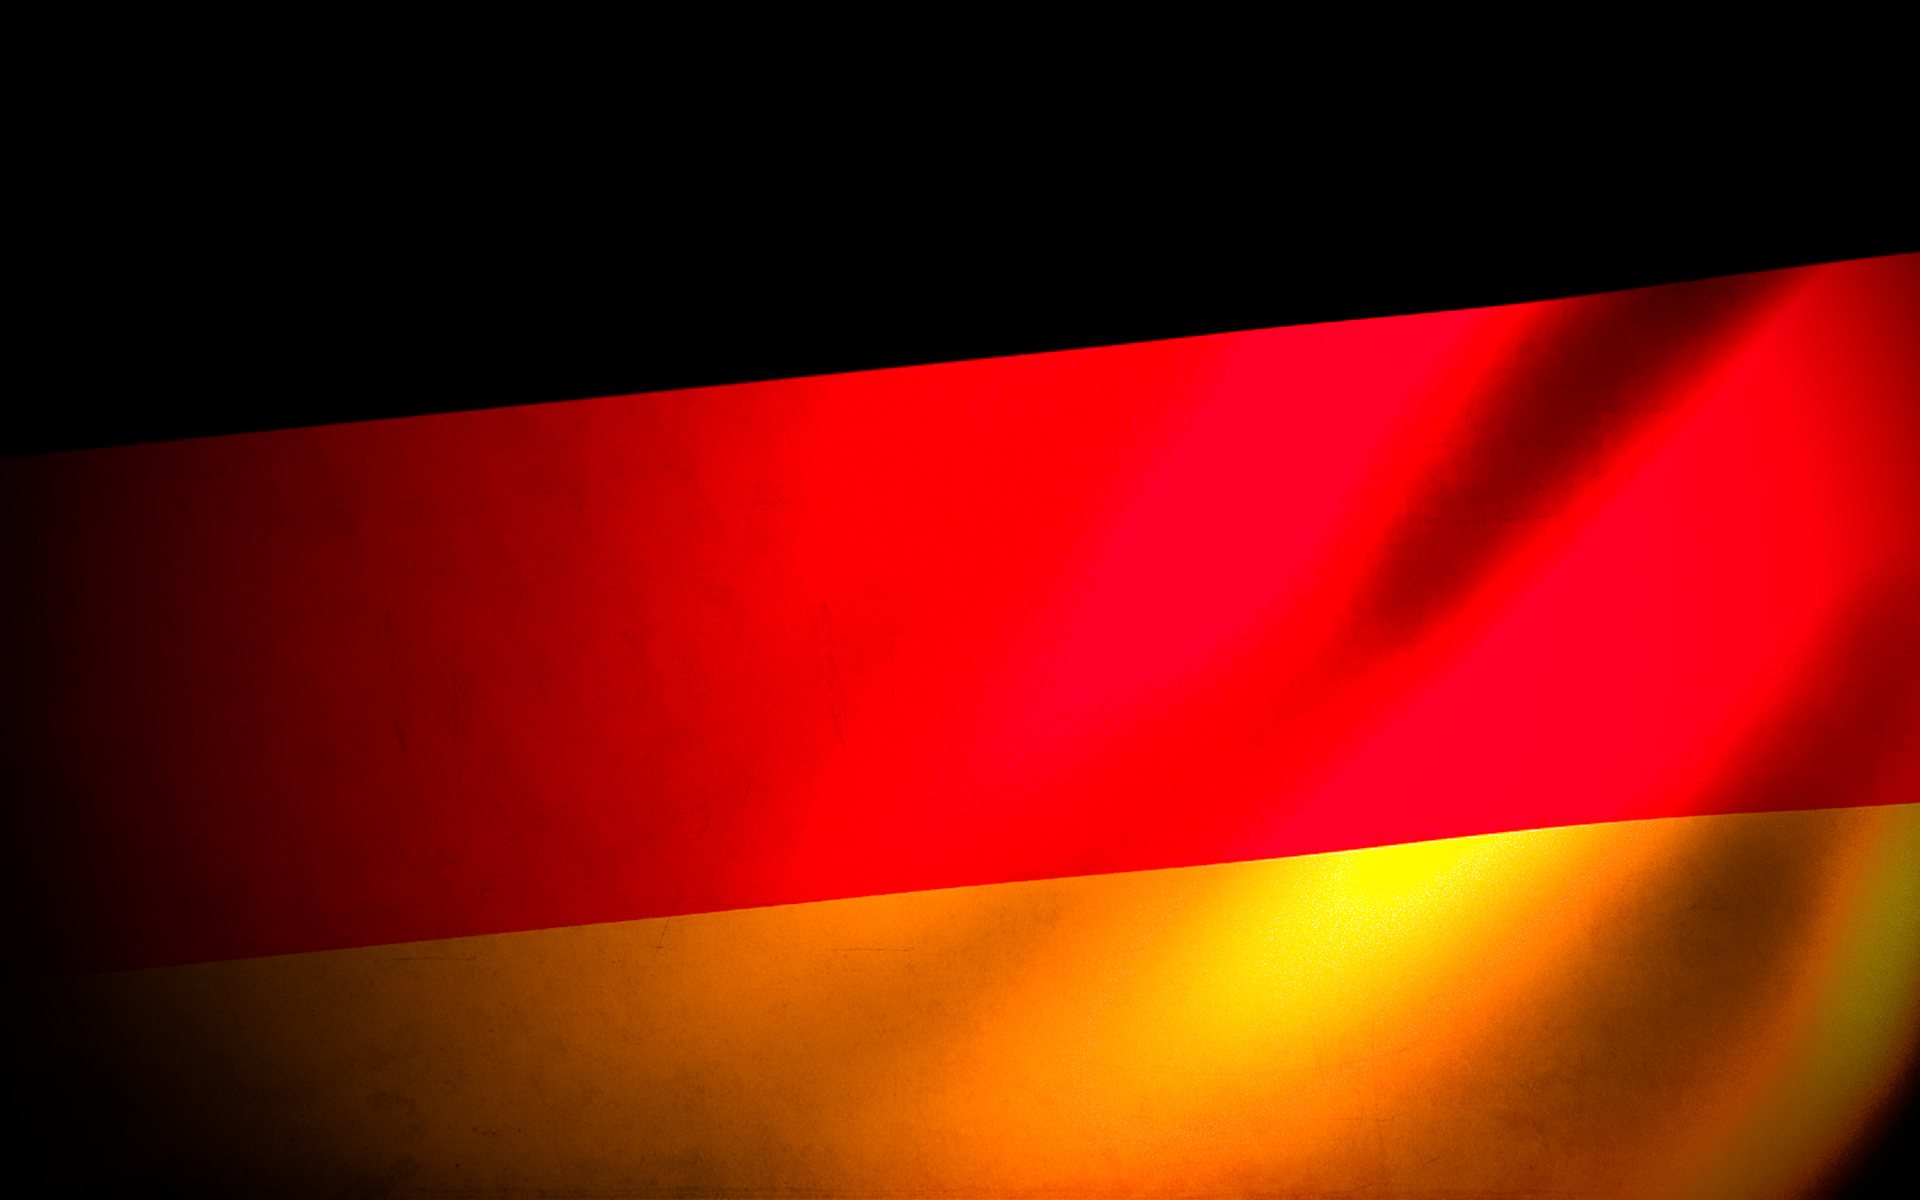 deutschland flag wallpaper - photo #2